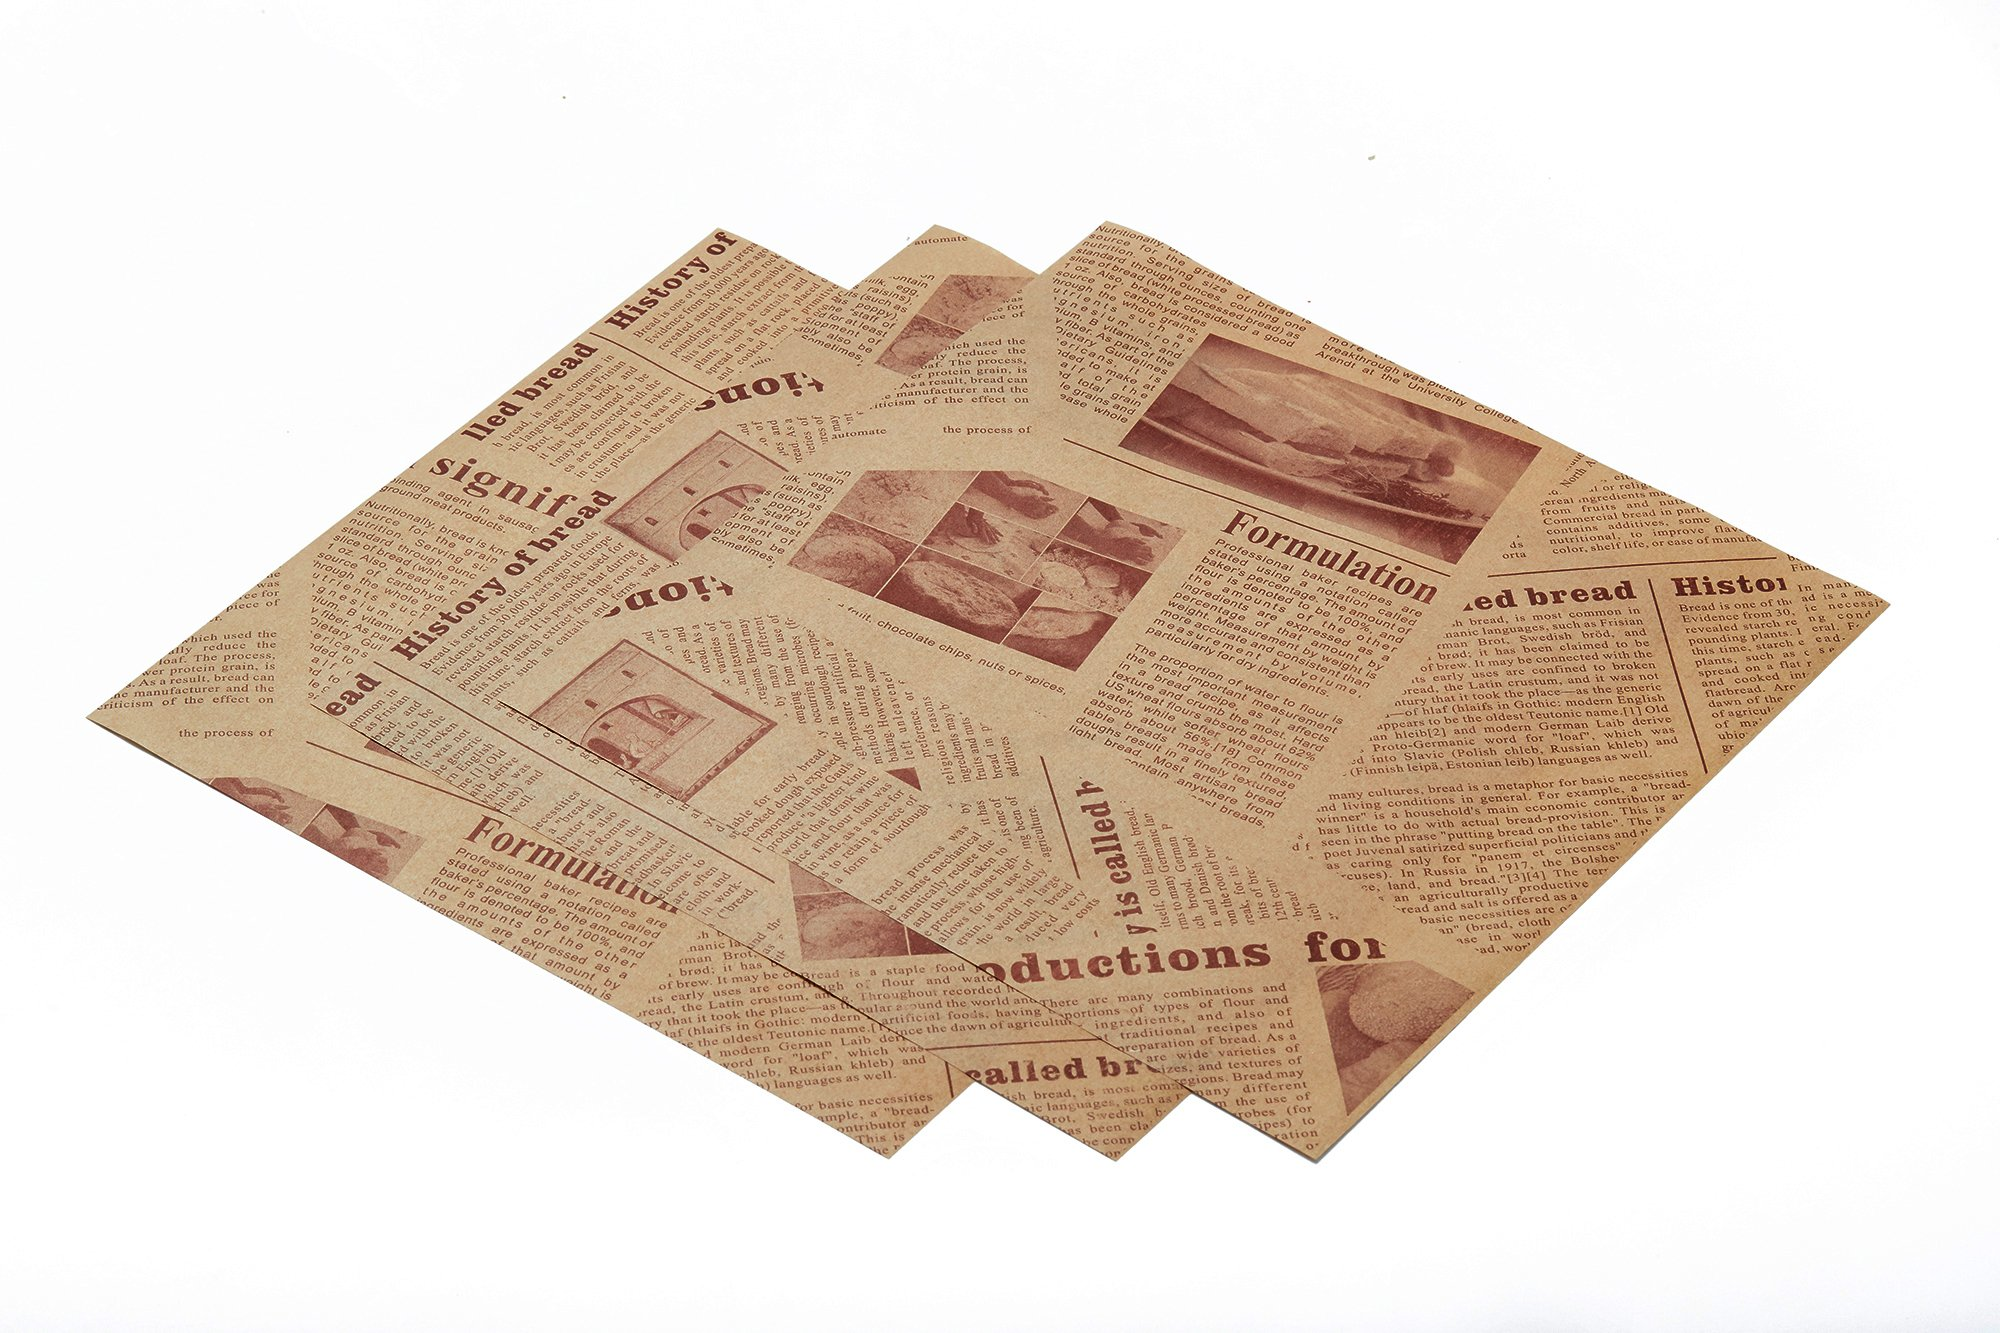 Mannily Food Grade Tissue Paper Food Basket Liners - Deli/BBQ Sandwich Wrapping Tissue - Kraft Paper Color Newsprint - 200 Square Sheets 8.66'' x 8.66'' (OldNewsprint)